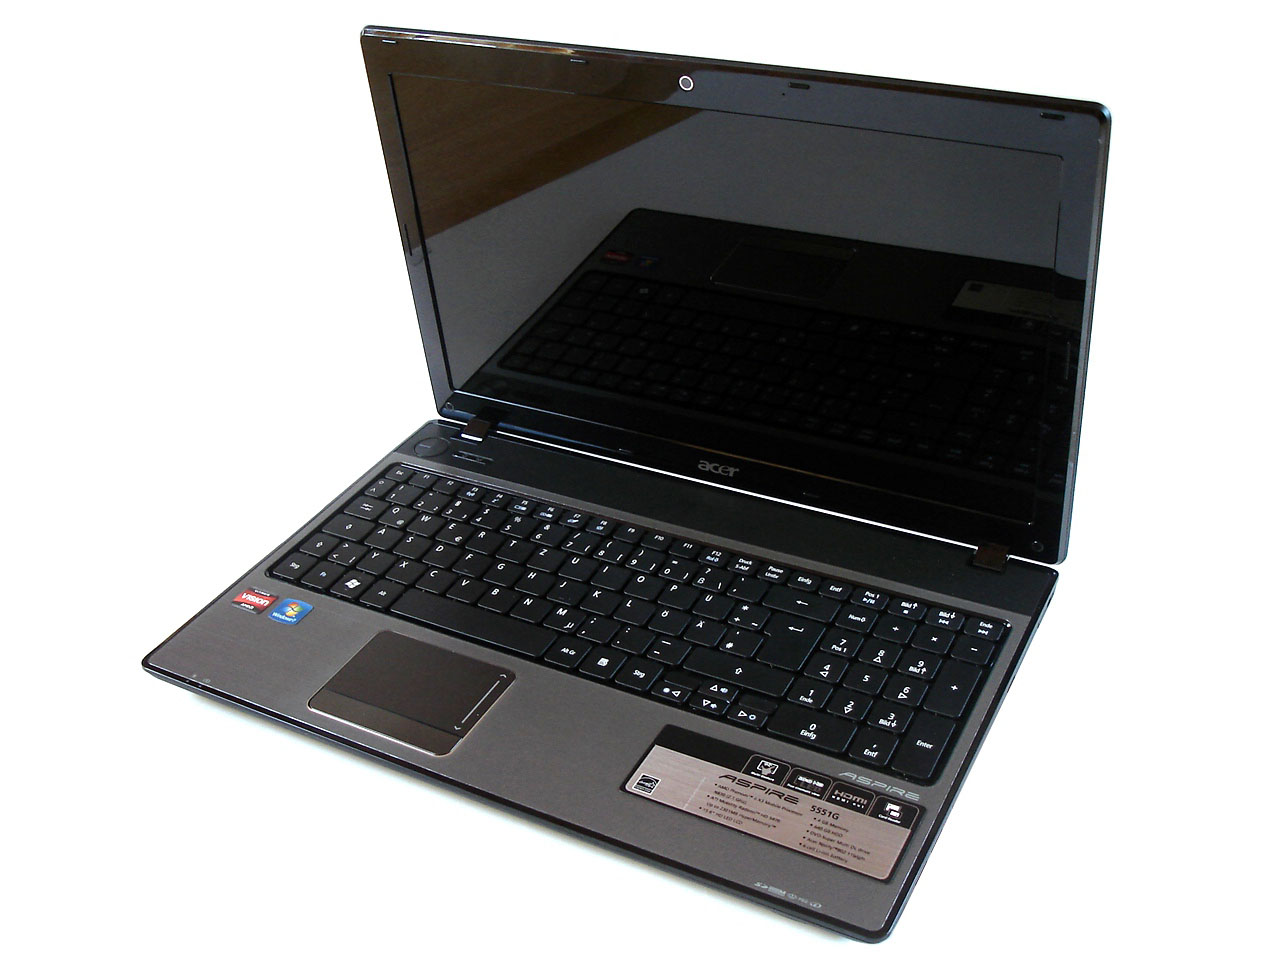 ACER ASPIRE 5552 HARD DRIVE WINDOWS 7 X64 DRIVER